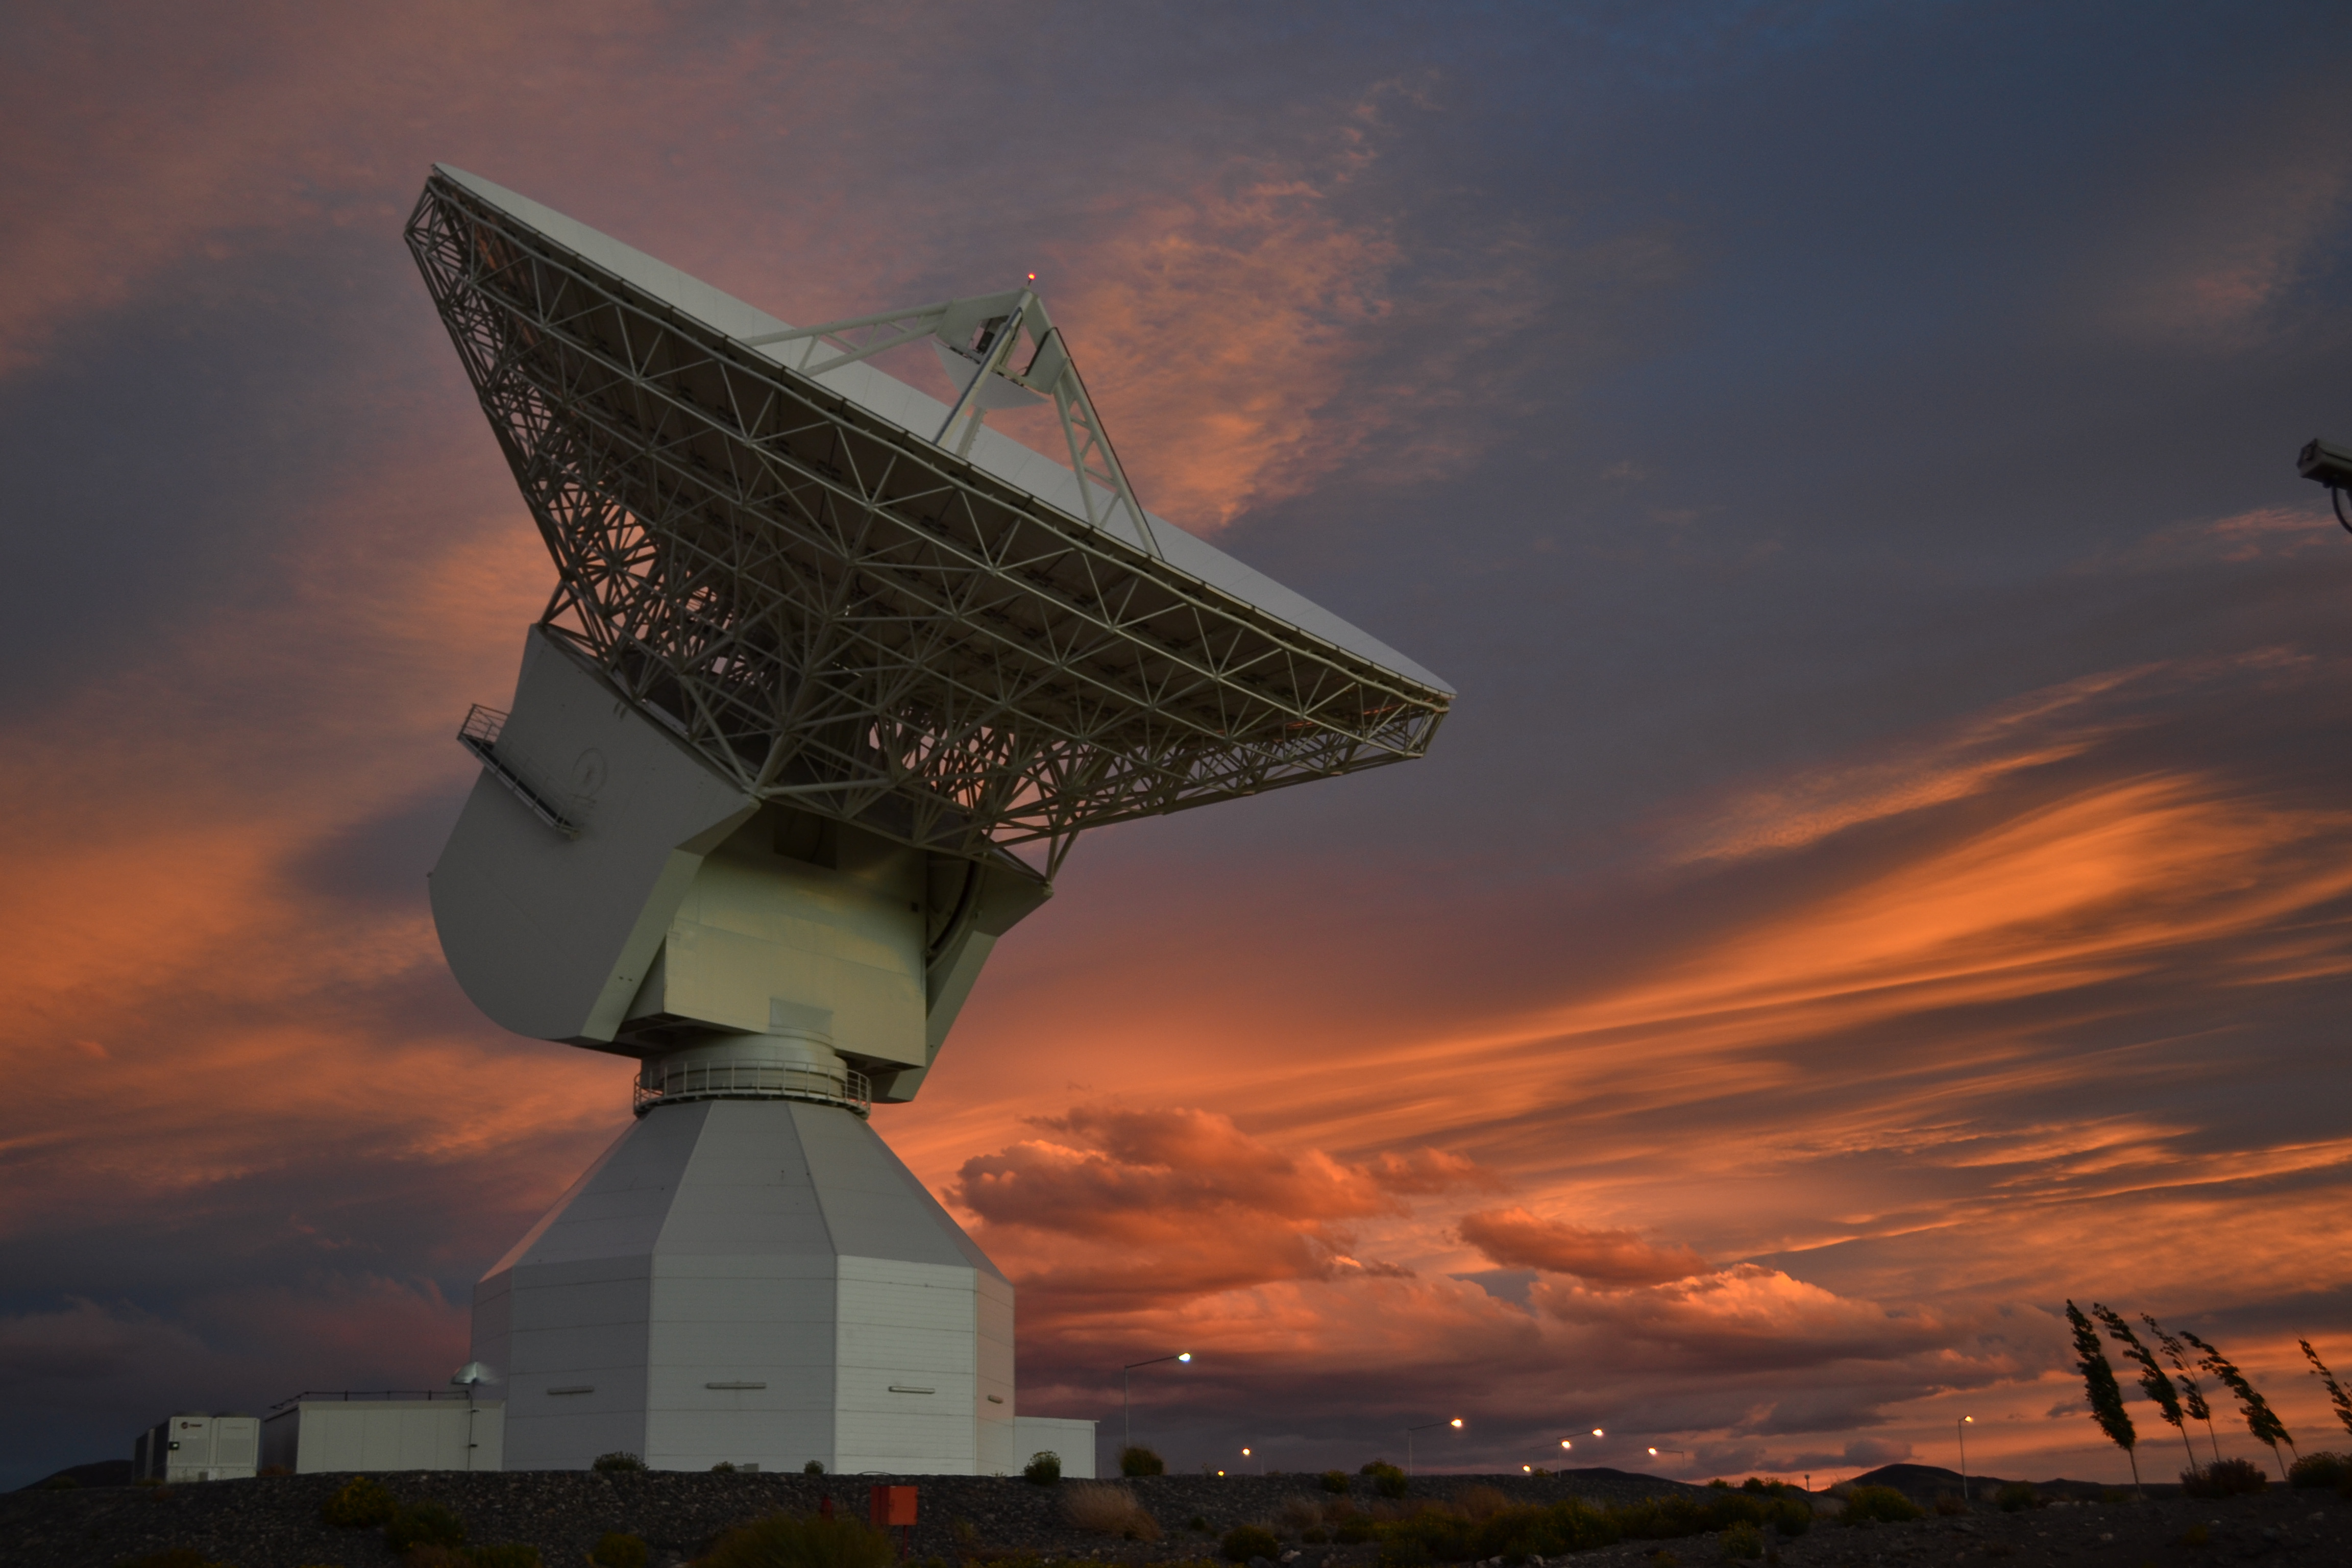 ESA's 35 m-diameter deep-space tracking station at New Norcia, Australia, seen during a dramatic sunset, 11 November 2014. Credit: ESA